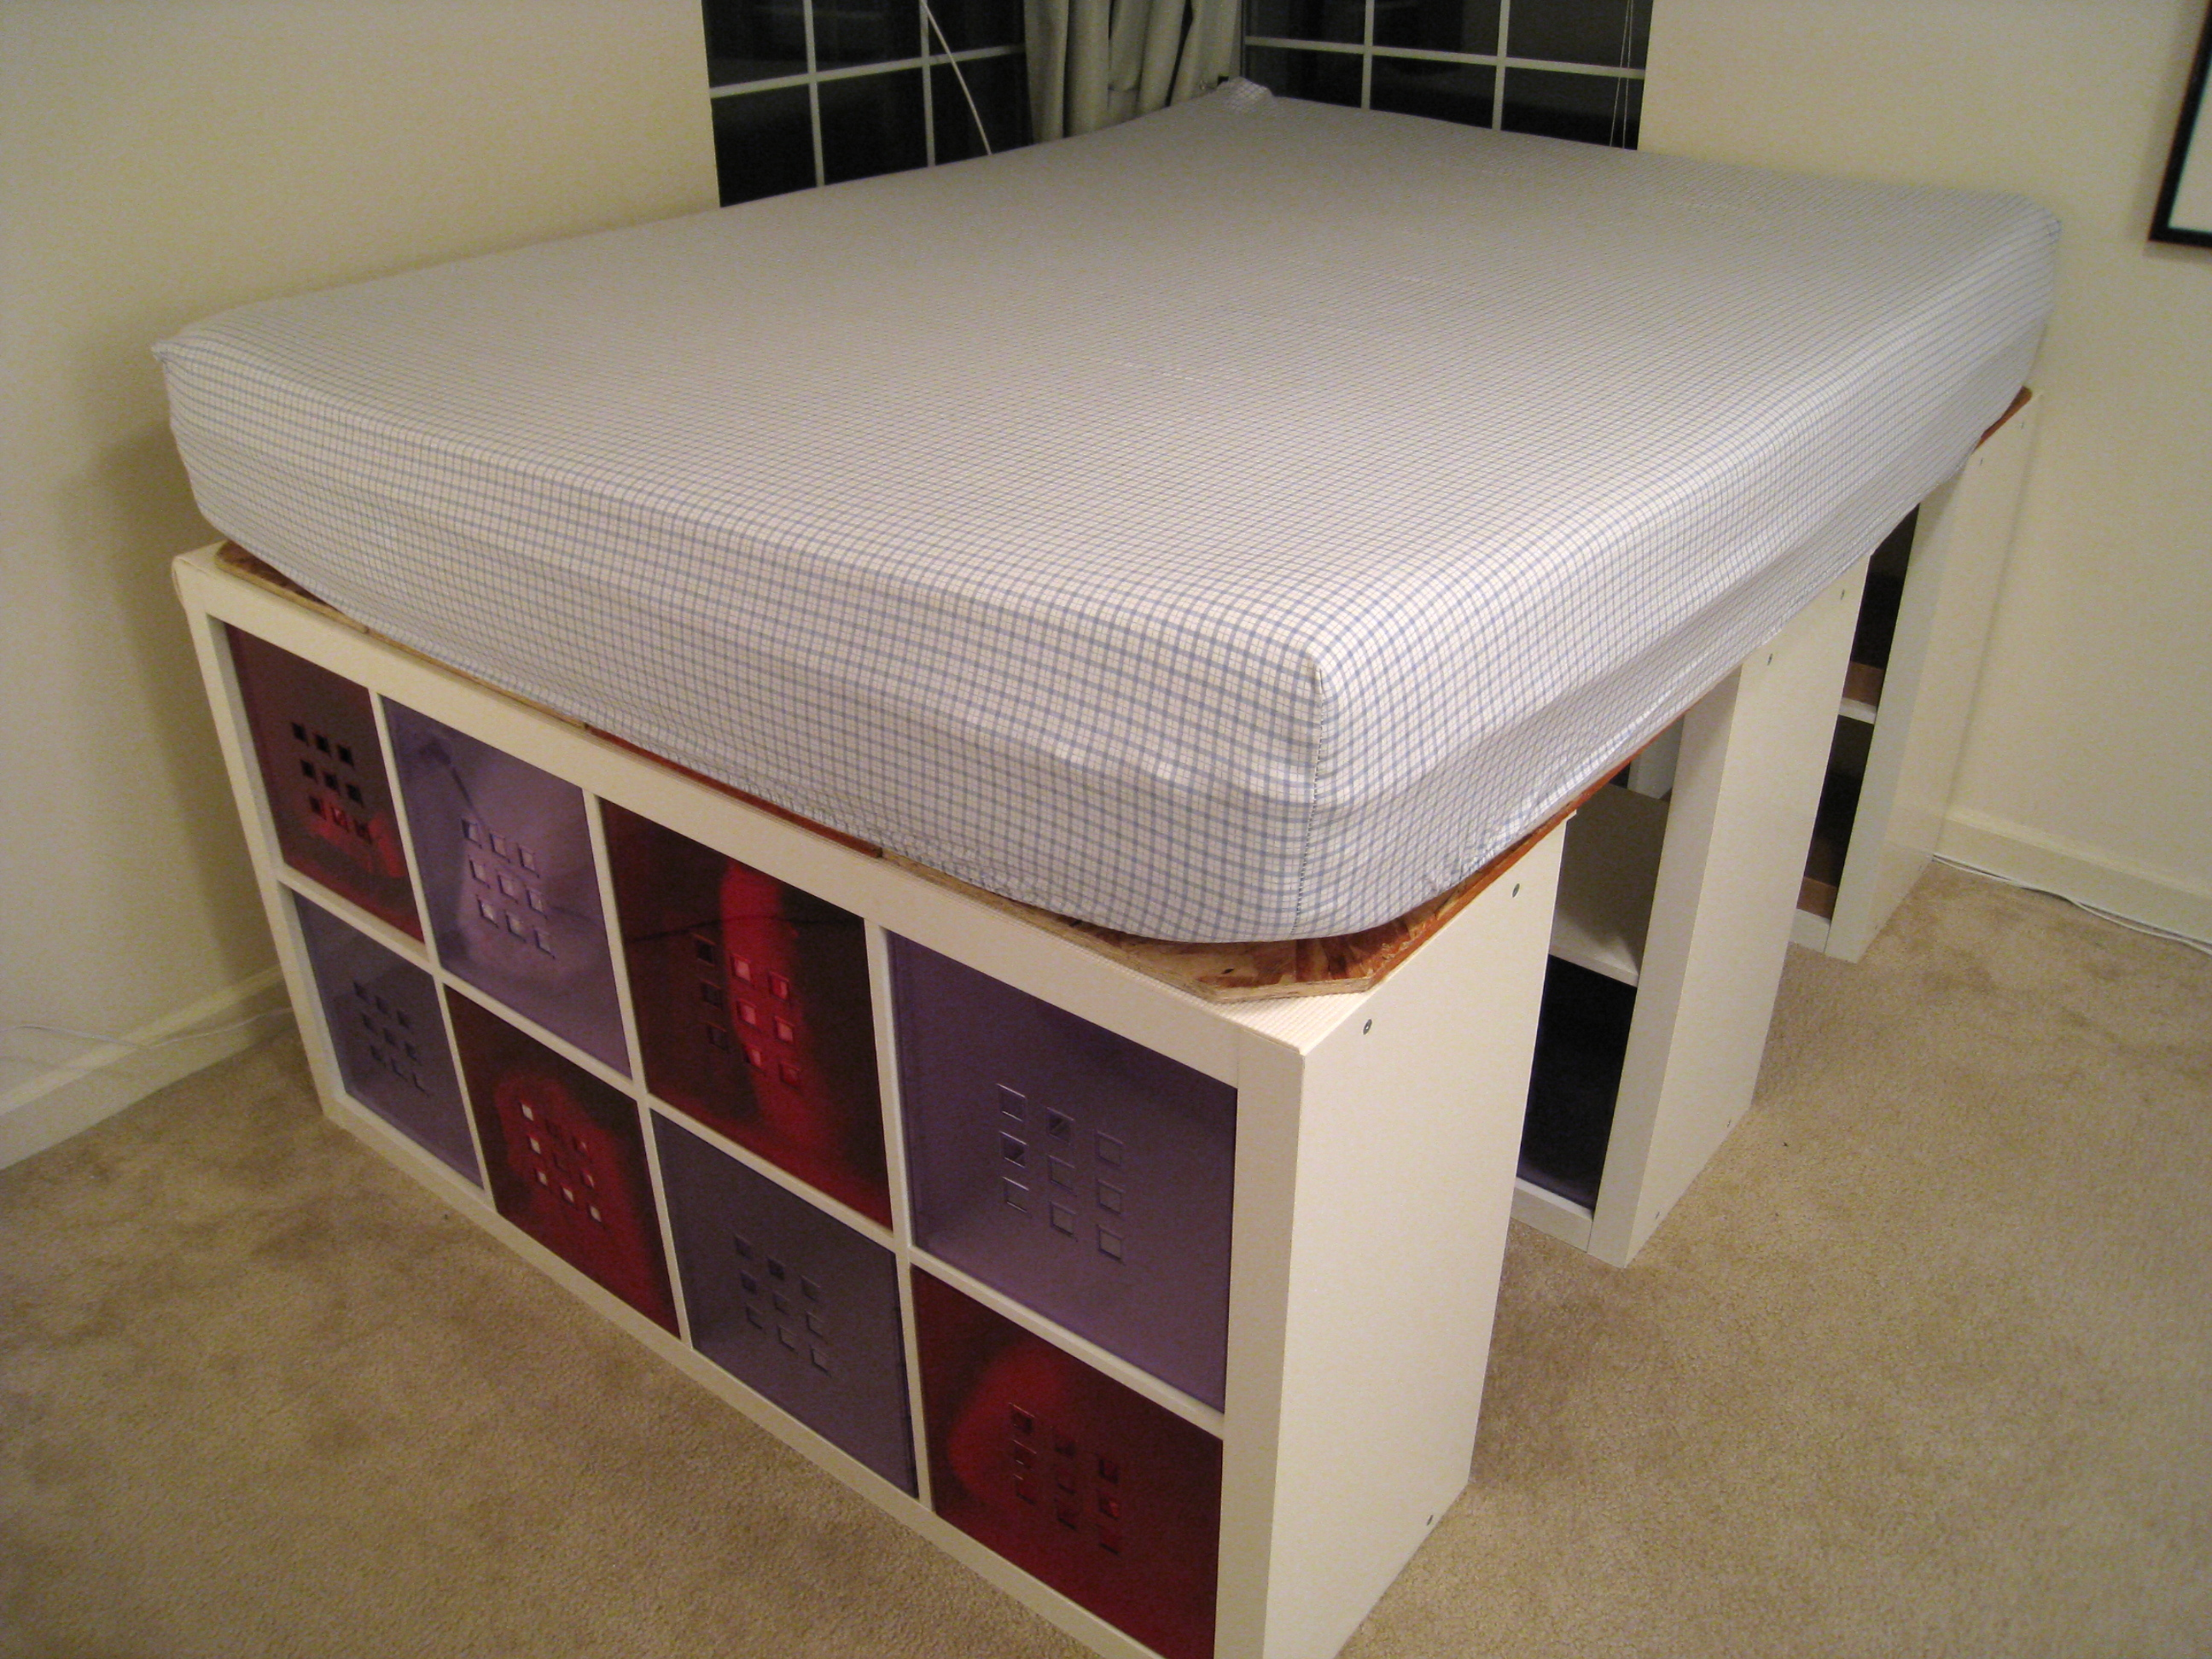 Lift me up bed mattress boxspring